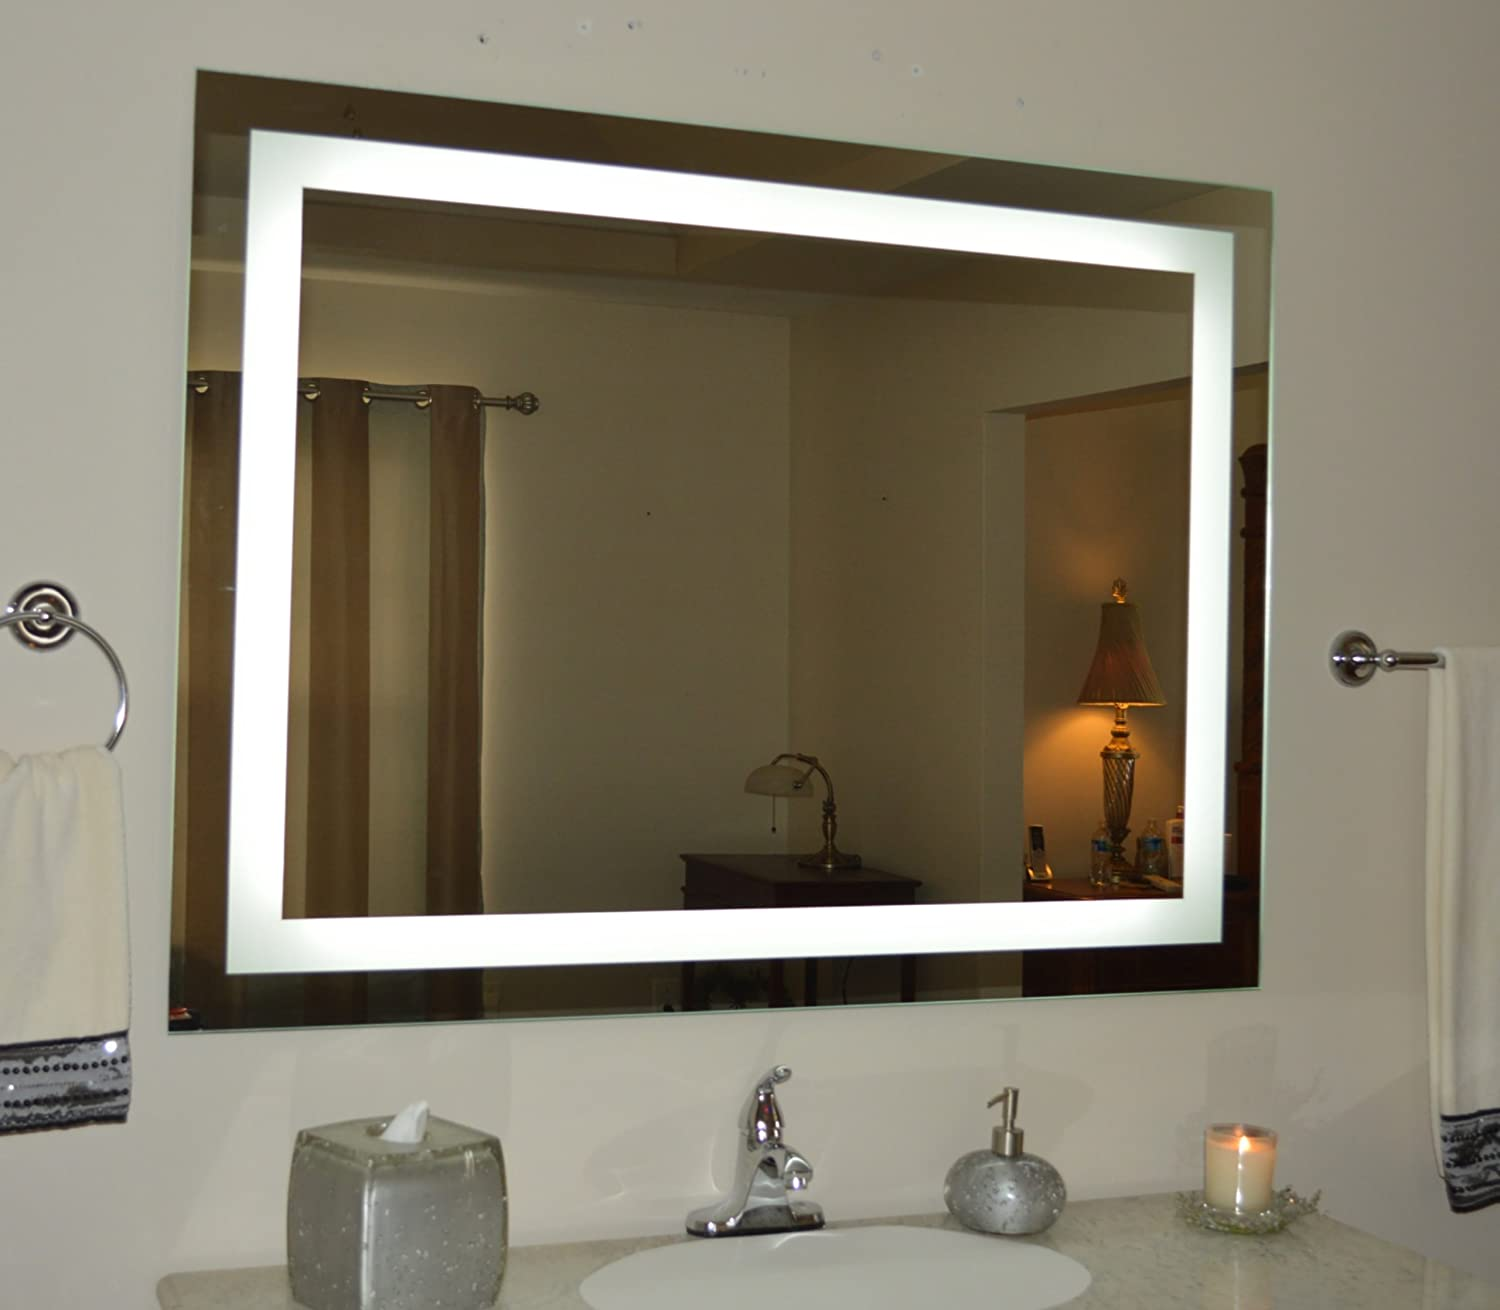 Famous Bathrooms With Showers And Tubs Big Bath And Shower Enclosures Regular Lamps For Bathroom Vanities Can I Use A Whirlpool Bath When Pregnant Old Grout Bathroom Shower Tile FreshCeramic Tile Design For Bathroom Walls Amazon.com: Wall Mounted Lighted Vanity Mirror LED MAM84836 ..